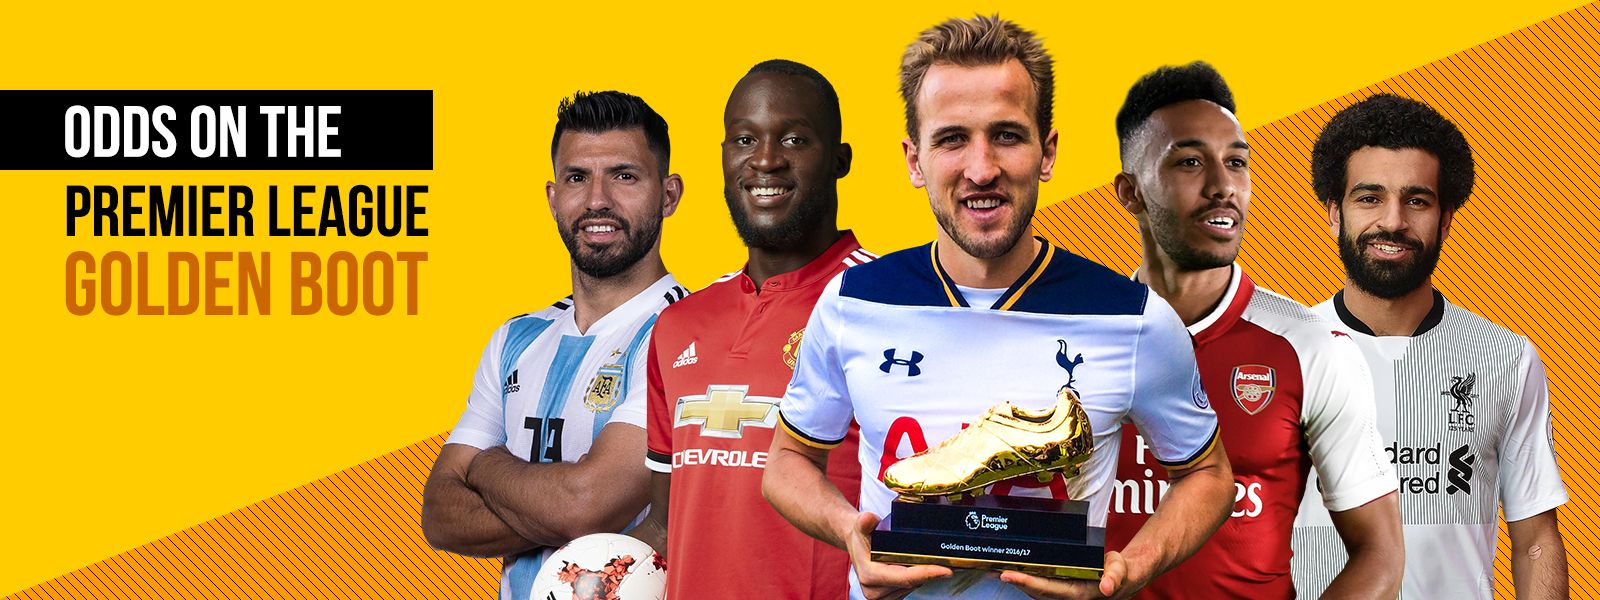 Betting Odds On The Premier League Golden Boot